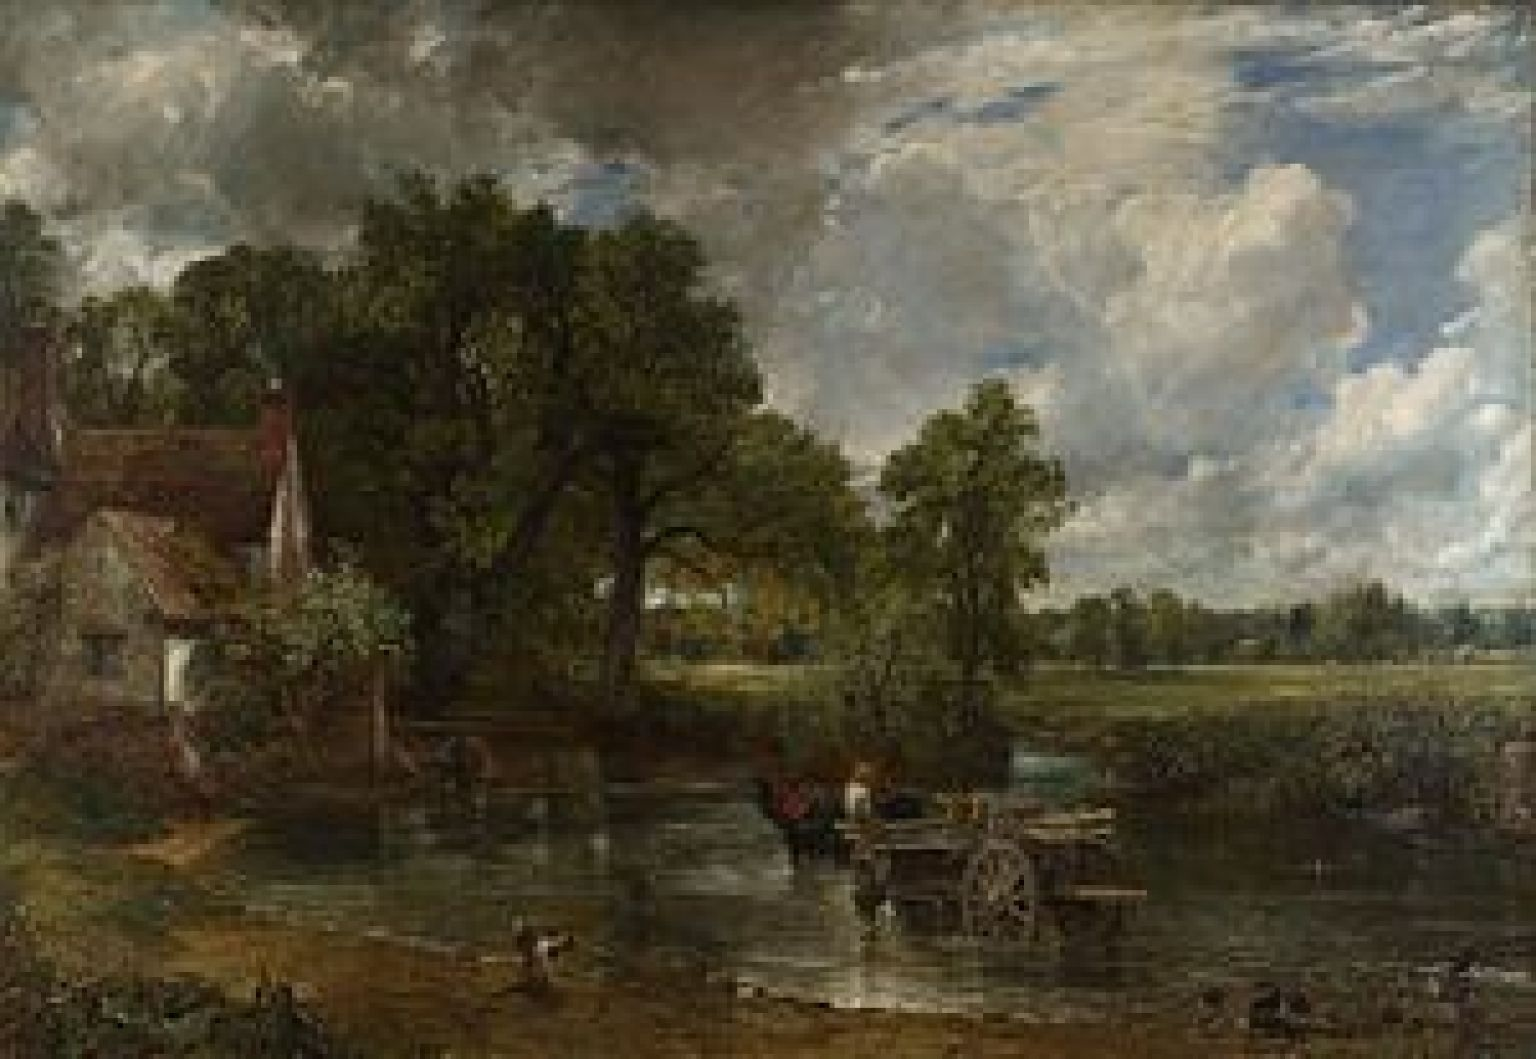 Man Arrested After Sticking Photo To Constable Painting